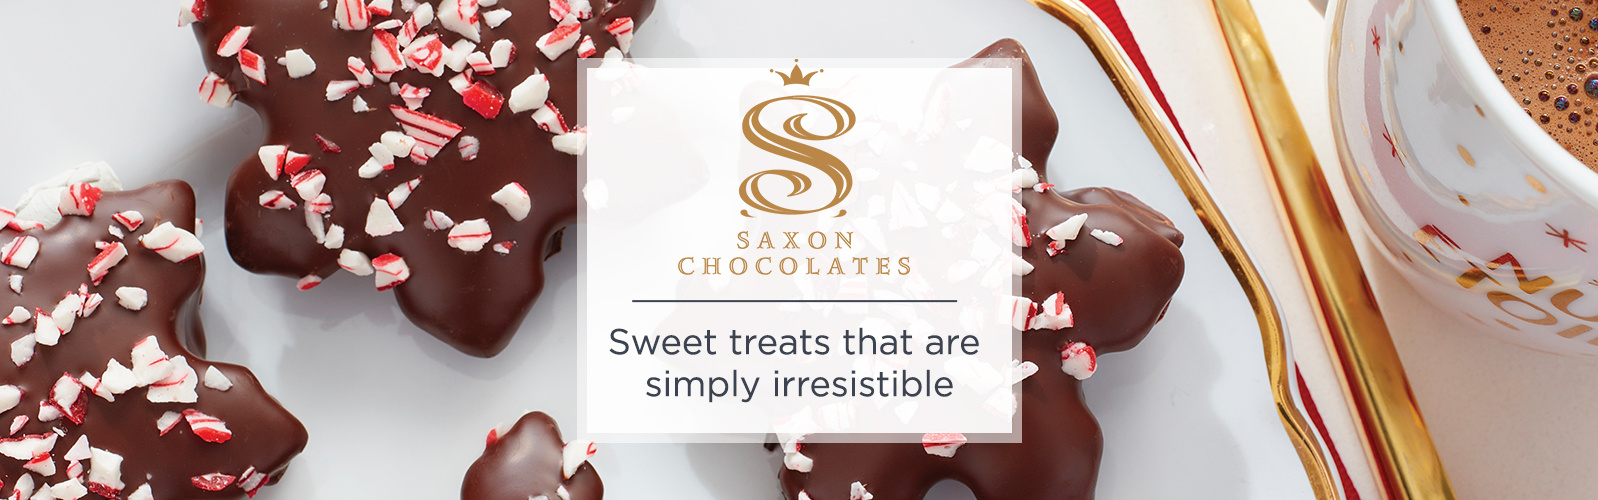 Saxon Chocolates - Sweet treats that are simply irresistible